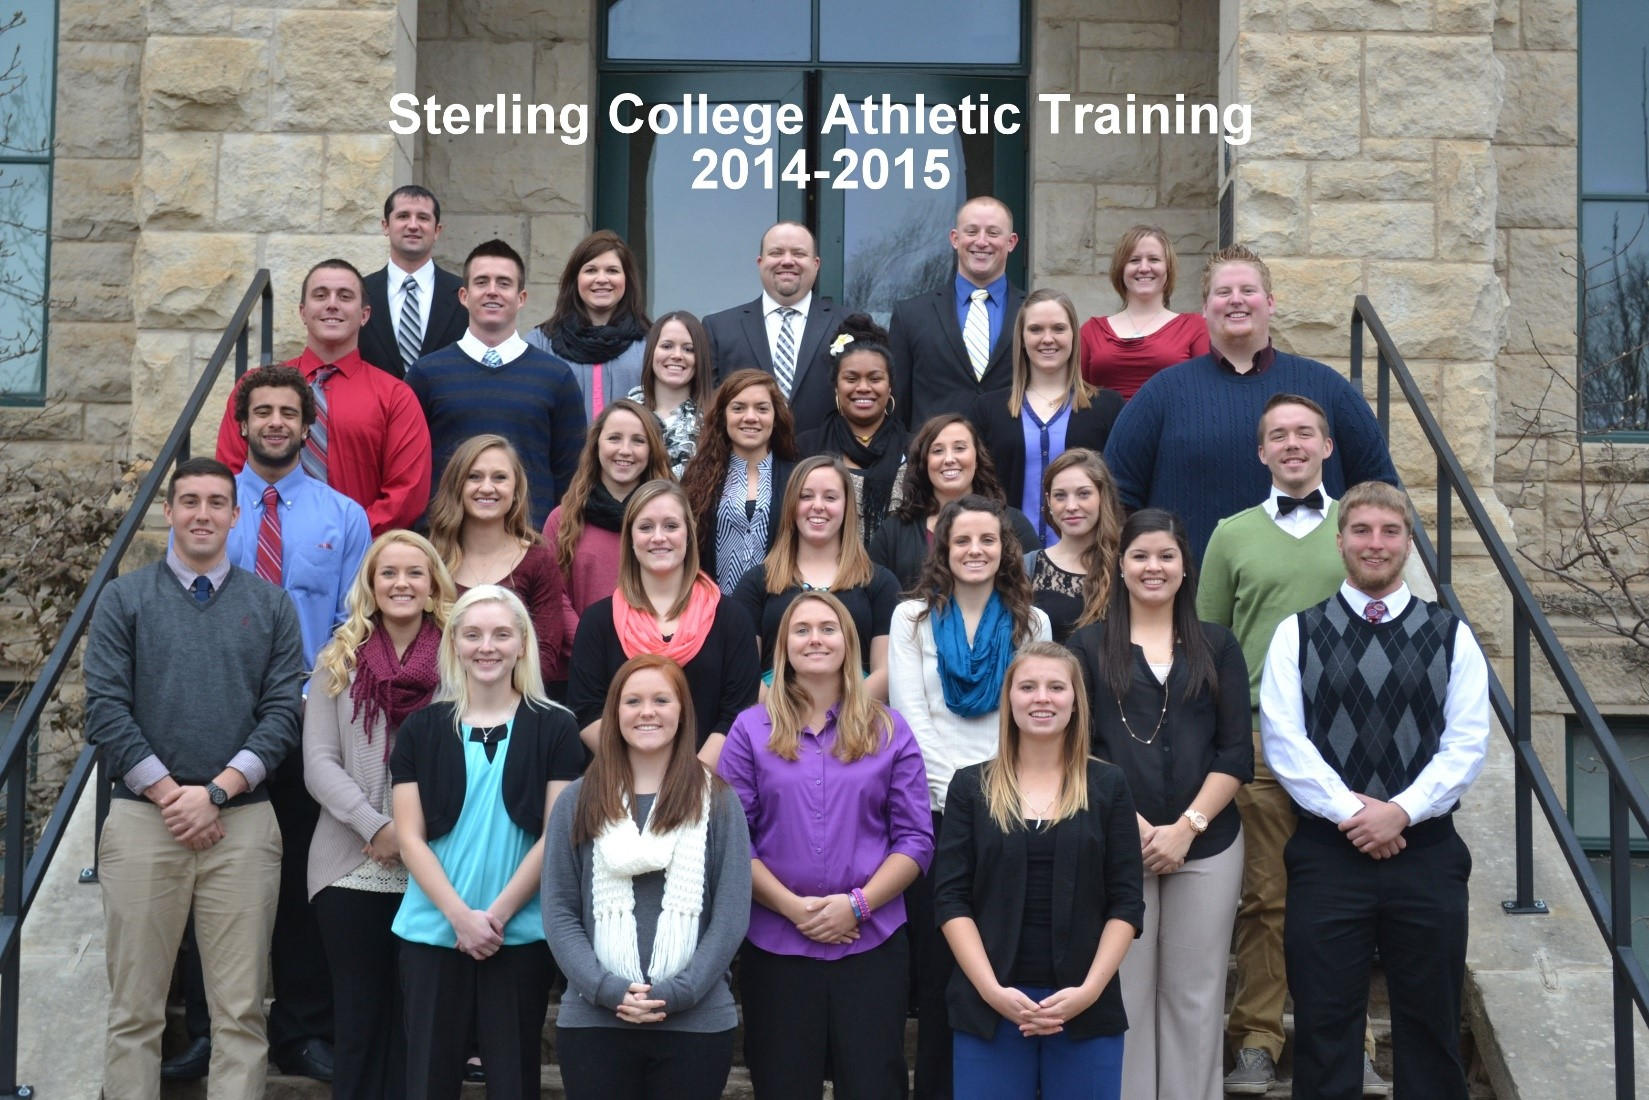 Sterling College Athletic Training 2014-15